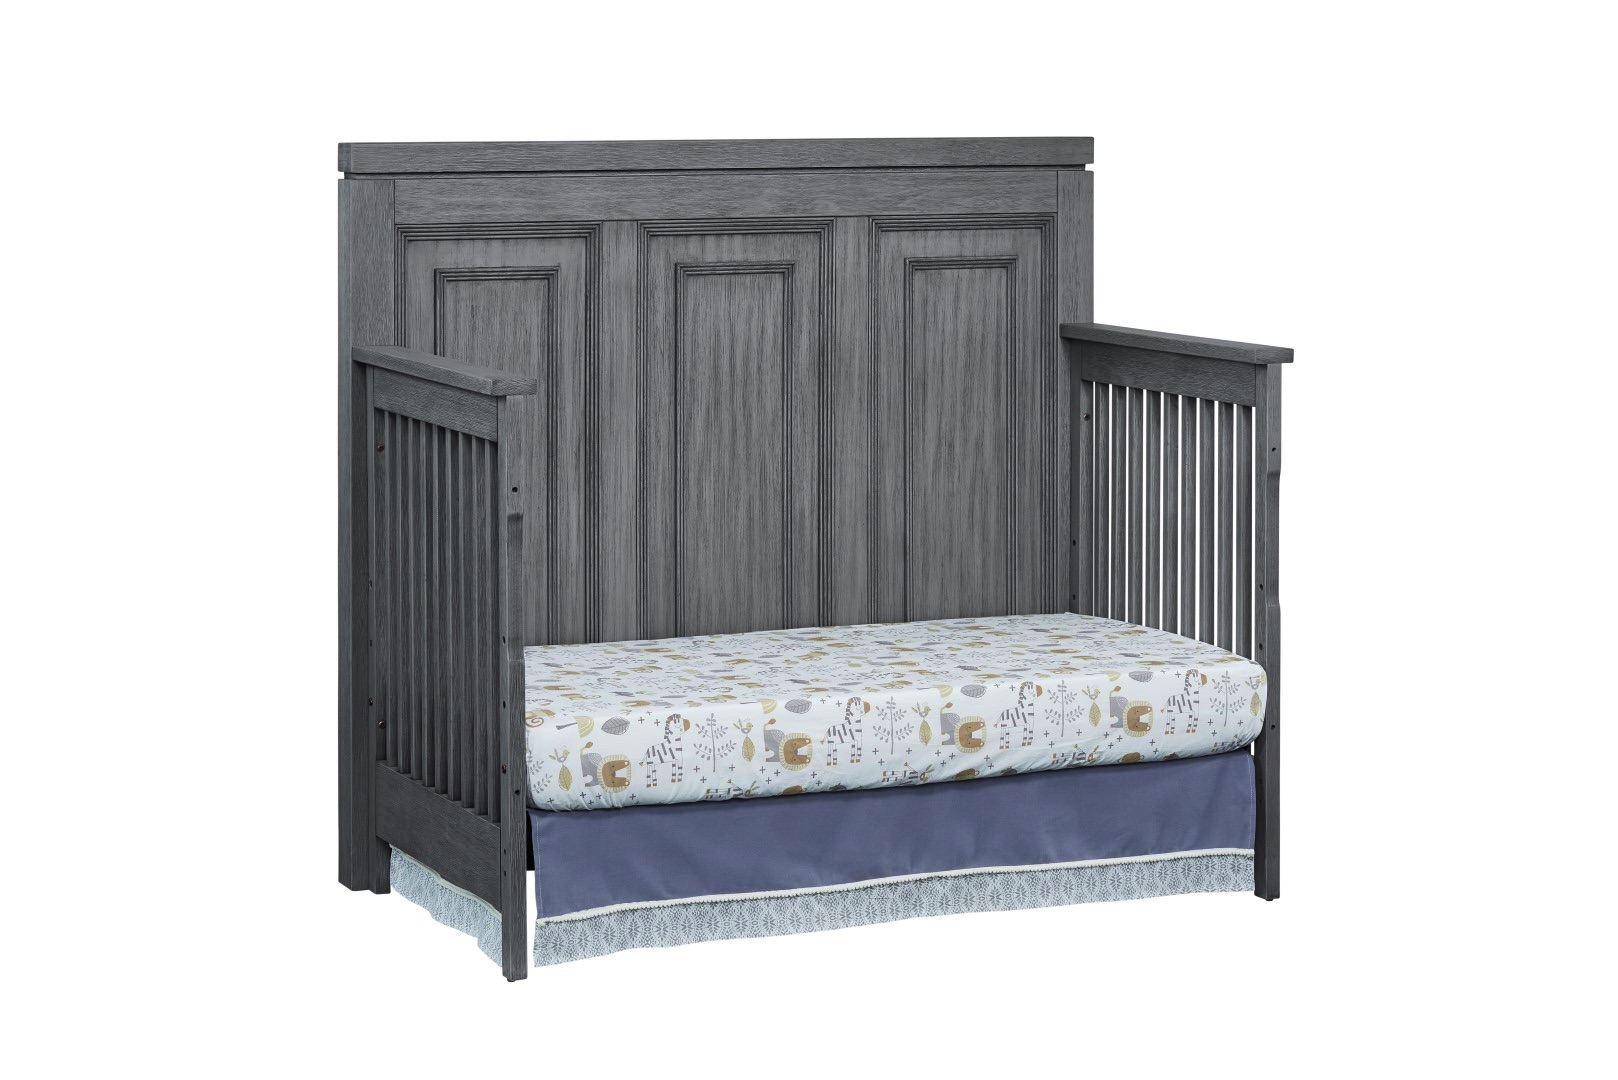 rustic crib furniture. 4 In 1 Convertible Crib Rustic Furniture